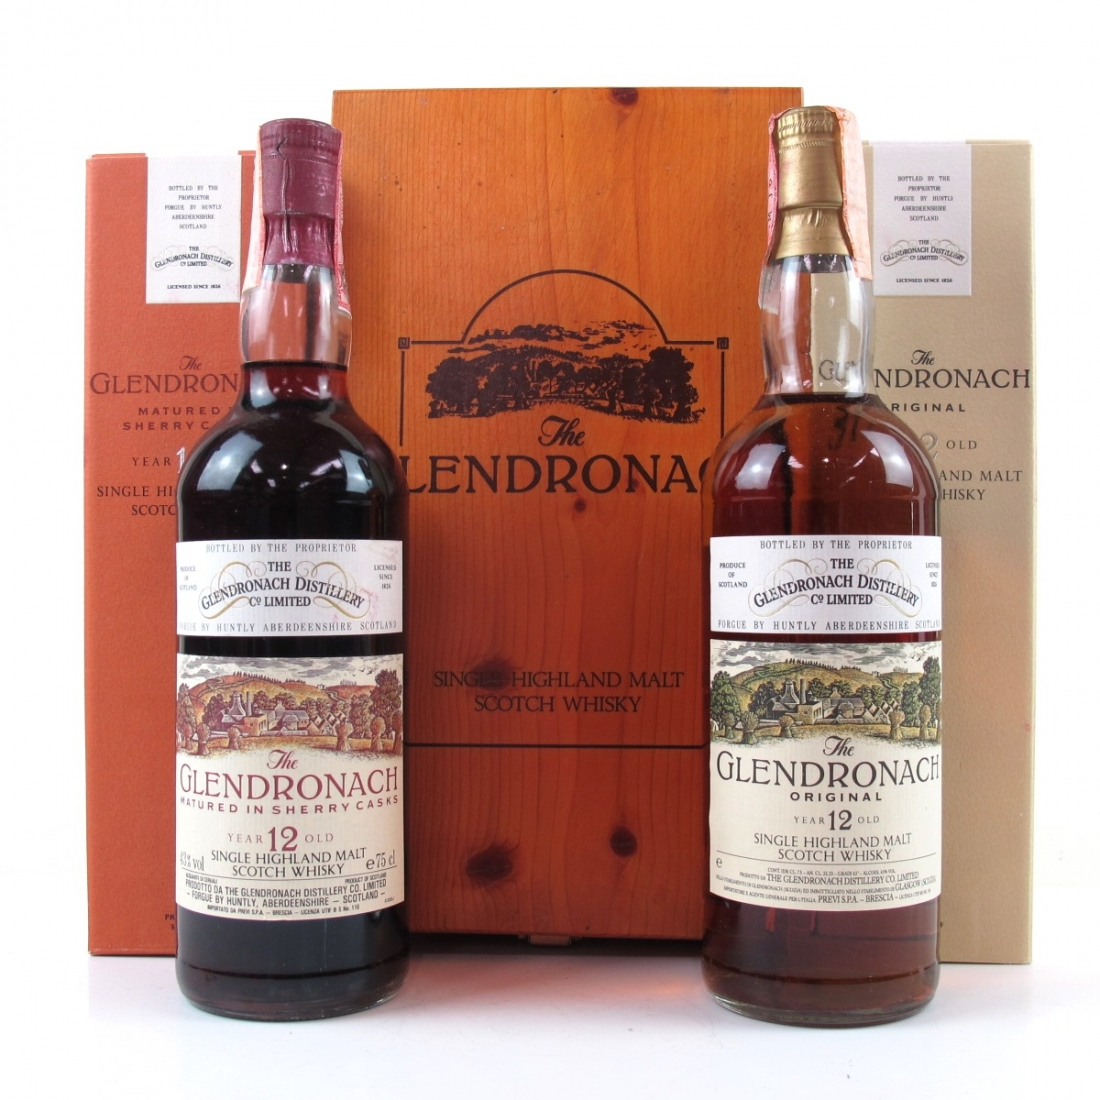 Glendronach 12 Year Old 1980s Original and Sherry Casks 2 x 75cl